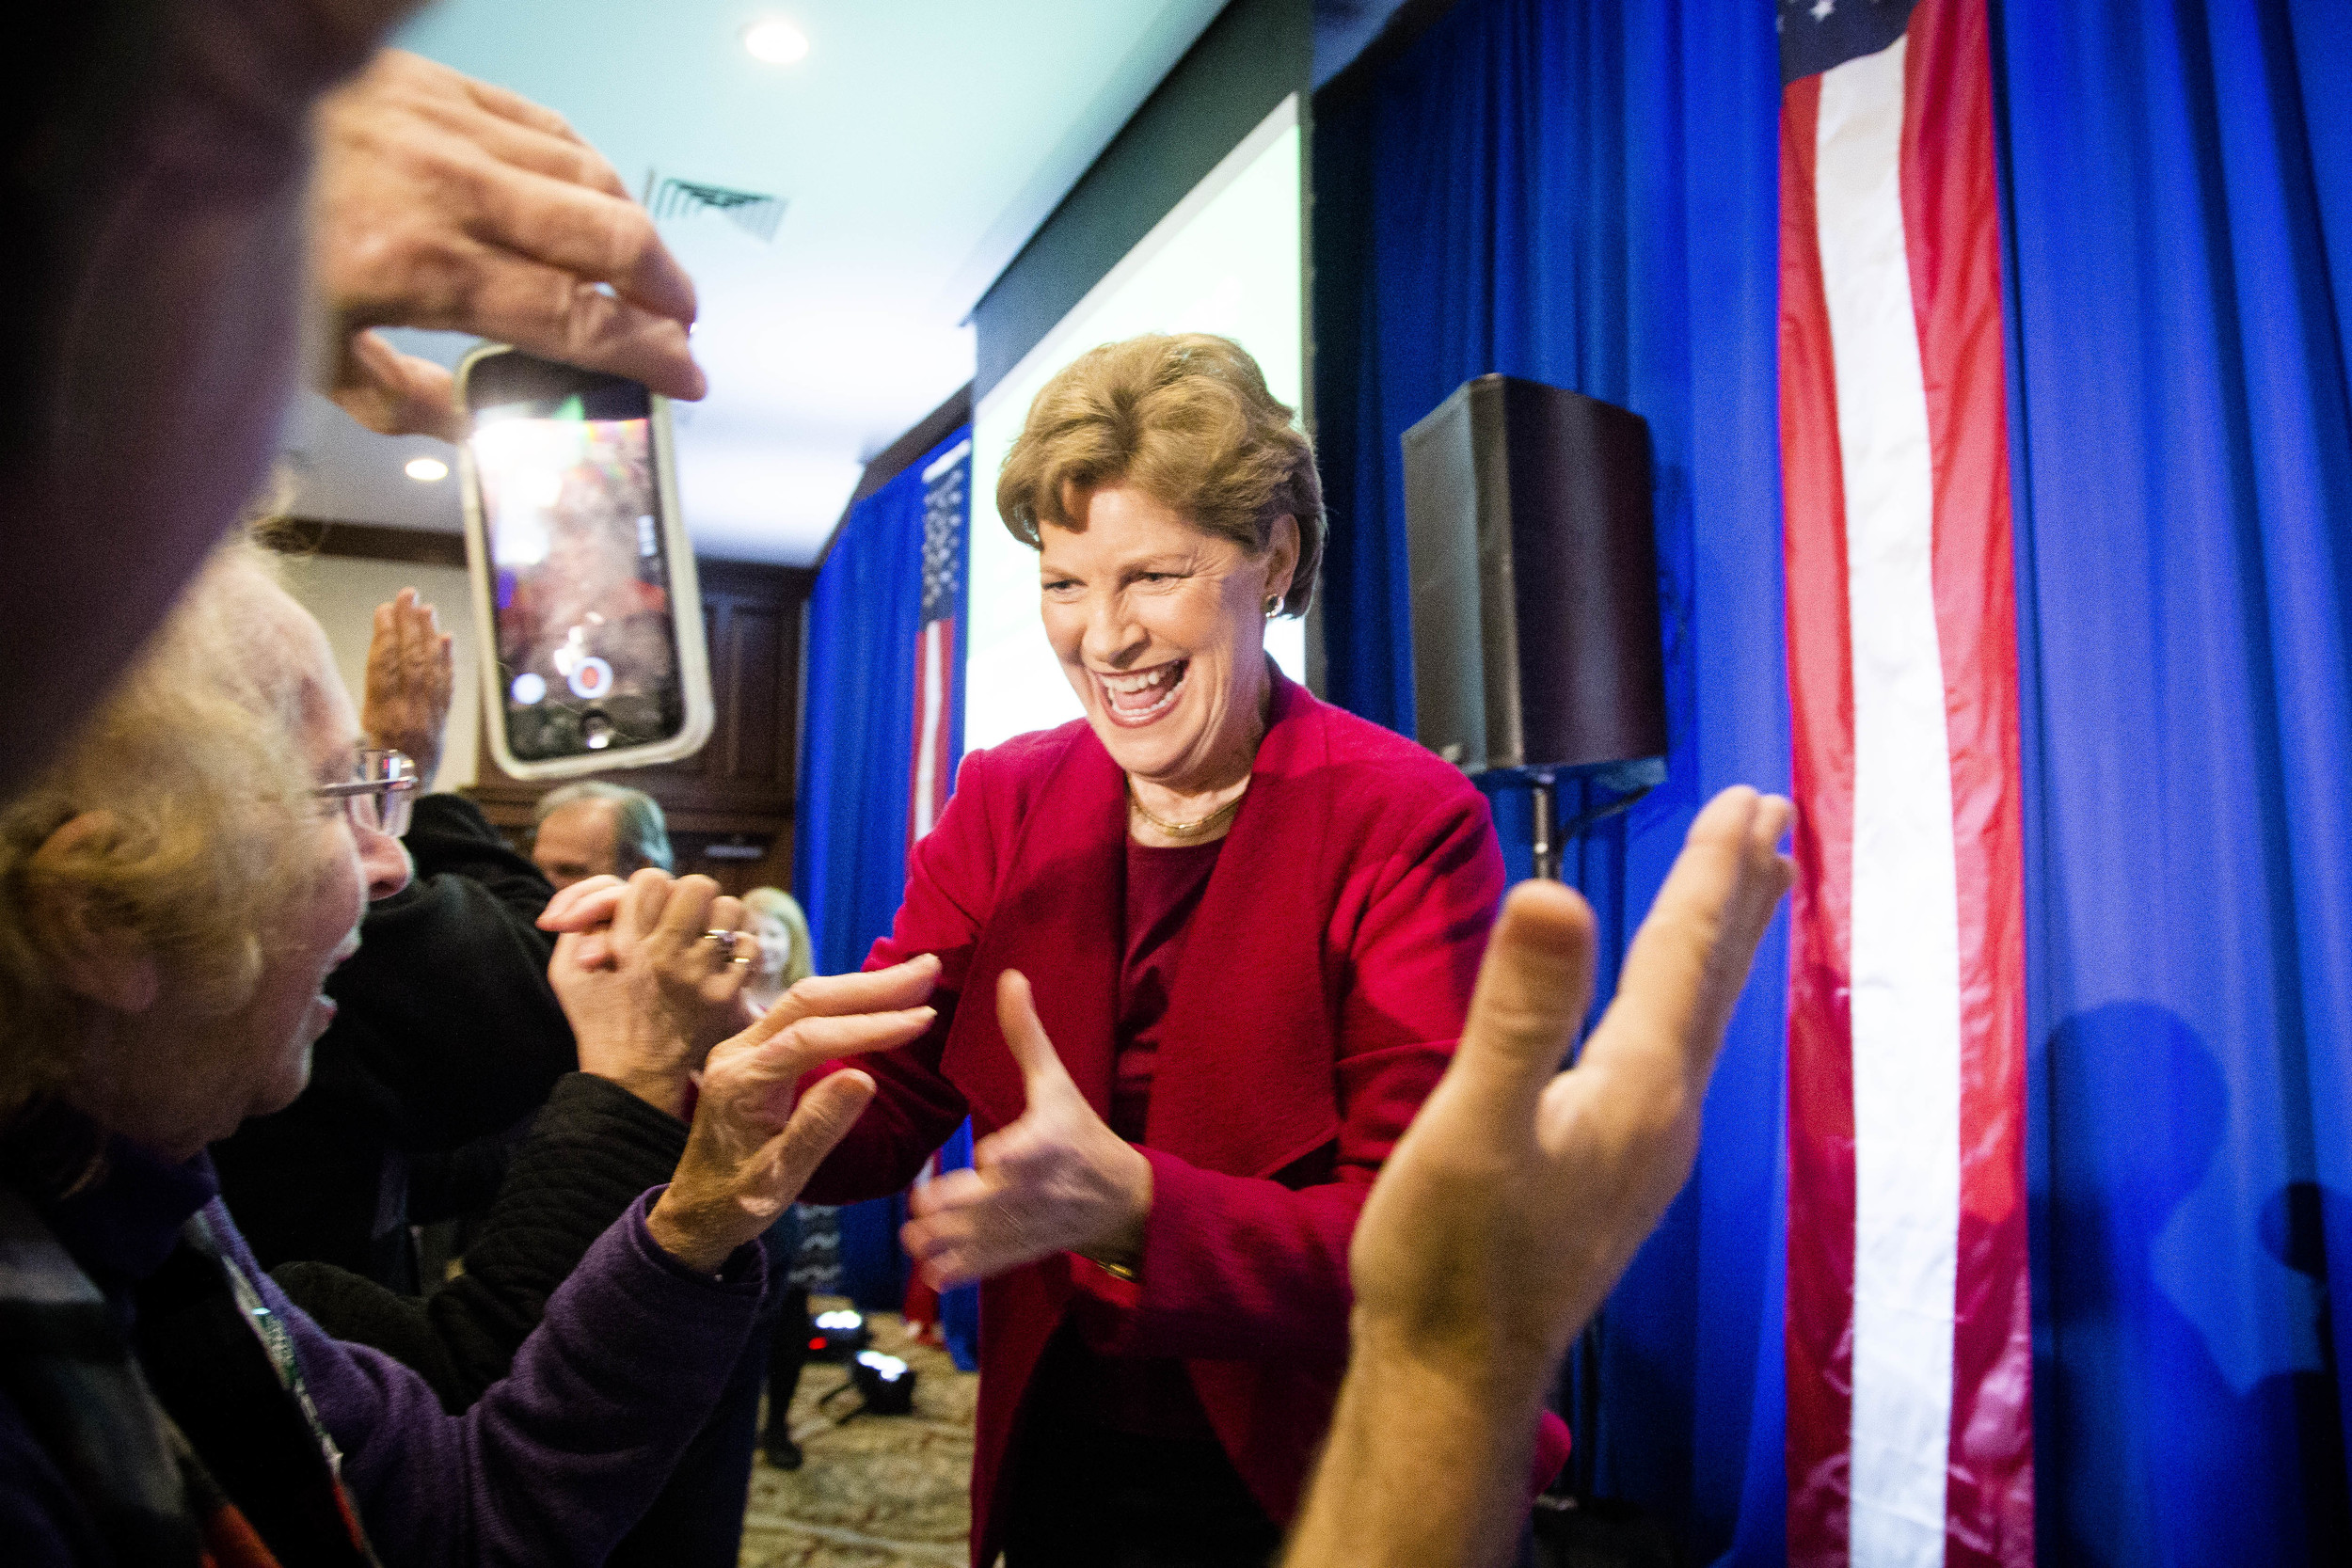 Manchester, NH, USA.Nov. 4, 2014. After Shaheen defeats Brown to keep Senate Seat. She was greeted by supporters while walking into the Puritan conference center in Manchester, New Hampshire. Photo by Ann Wang